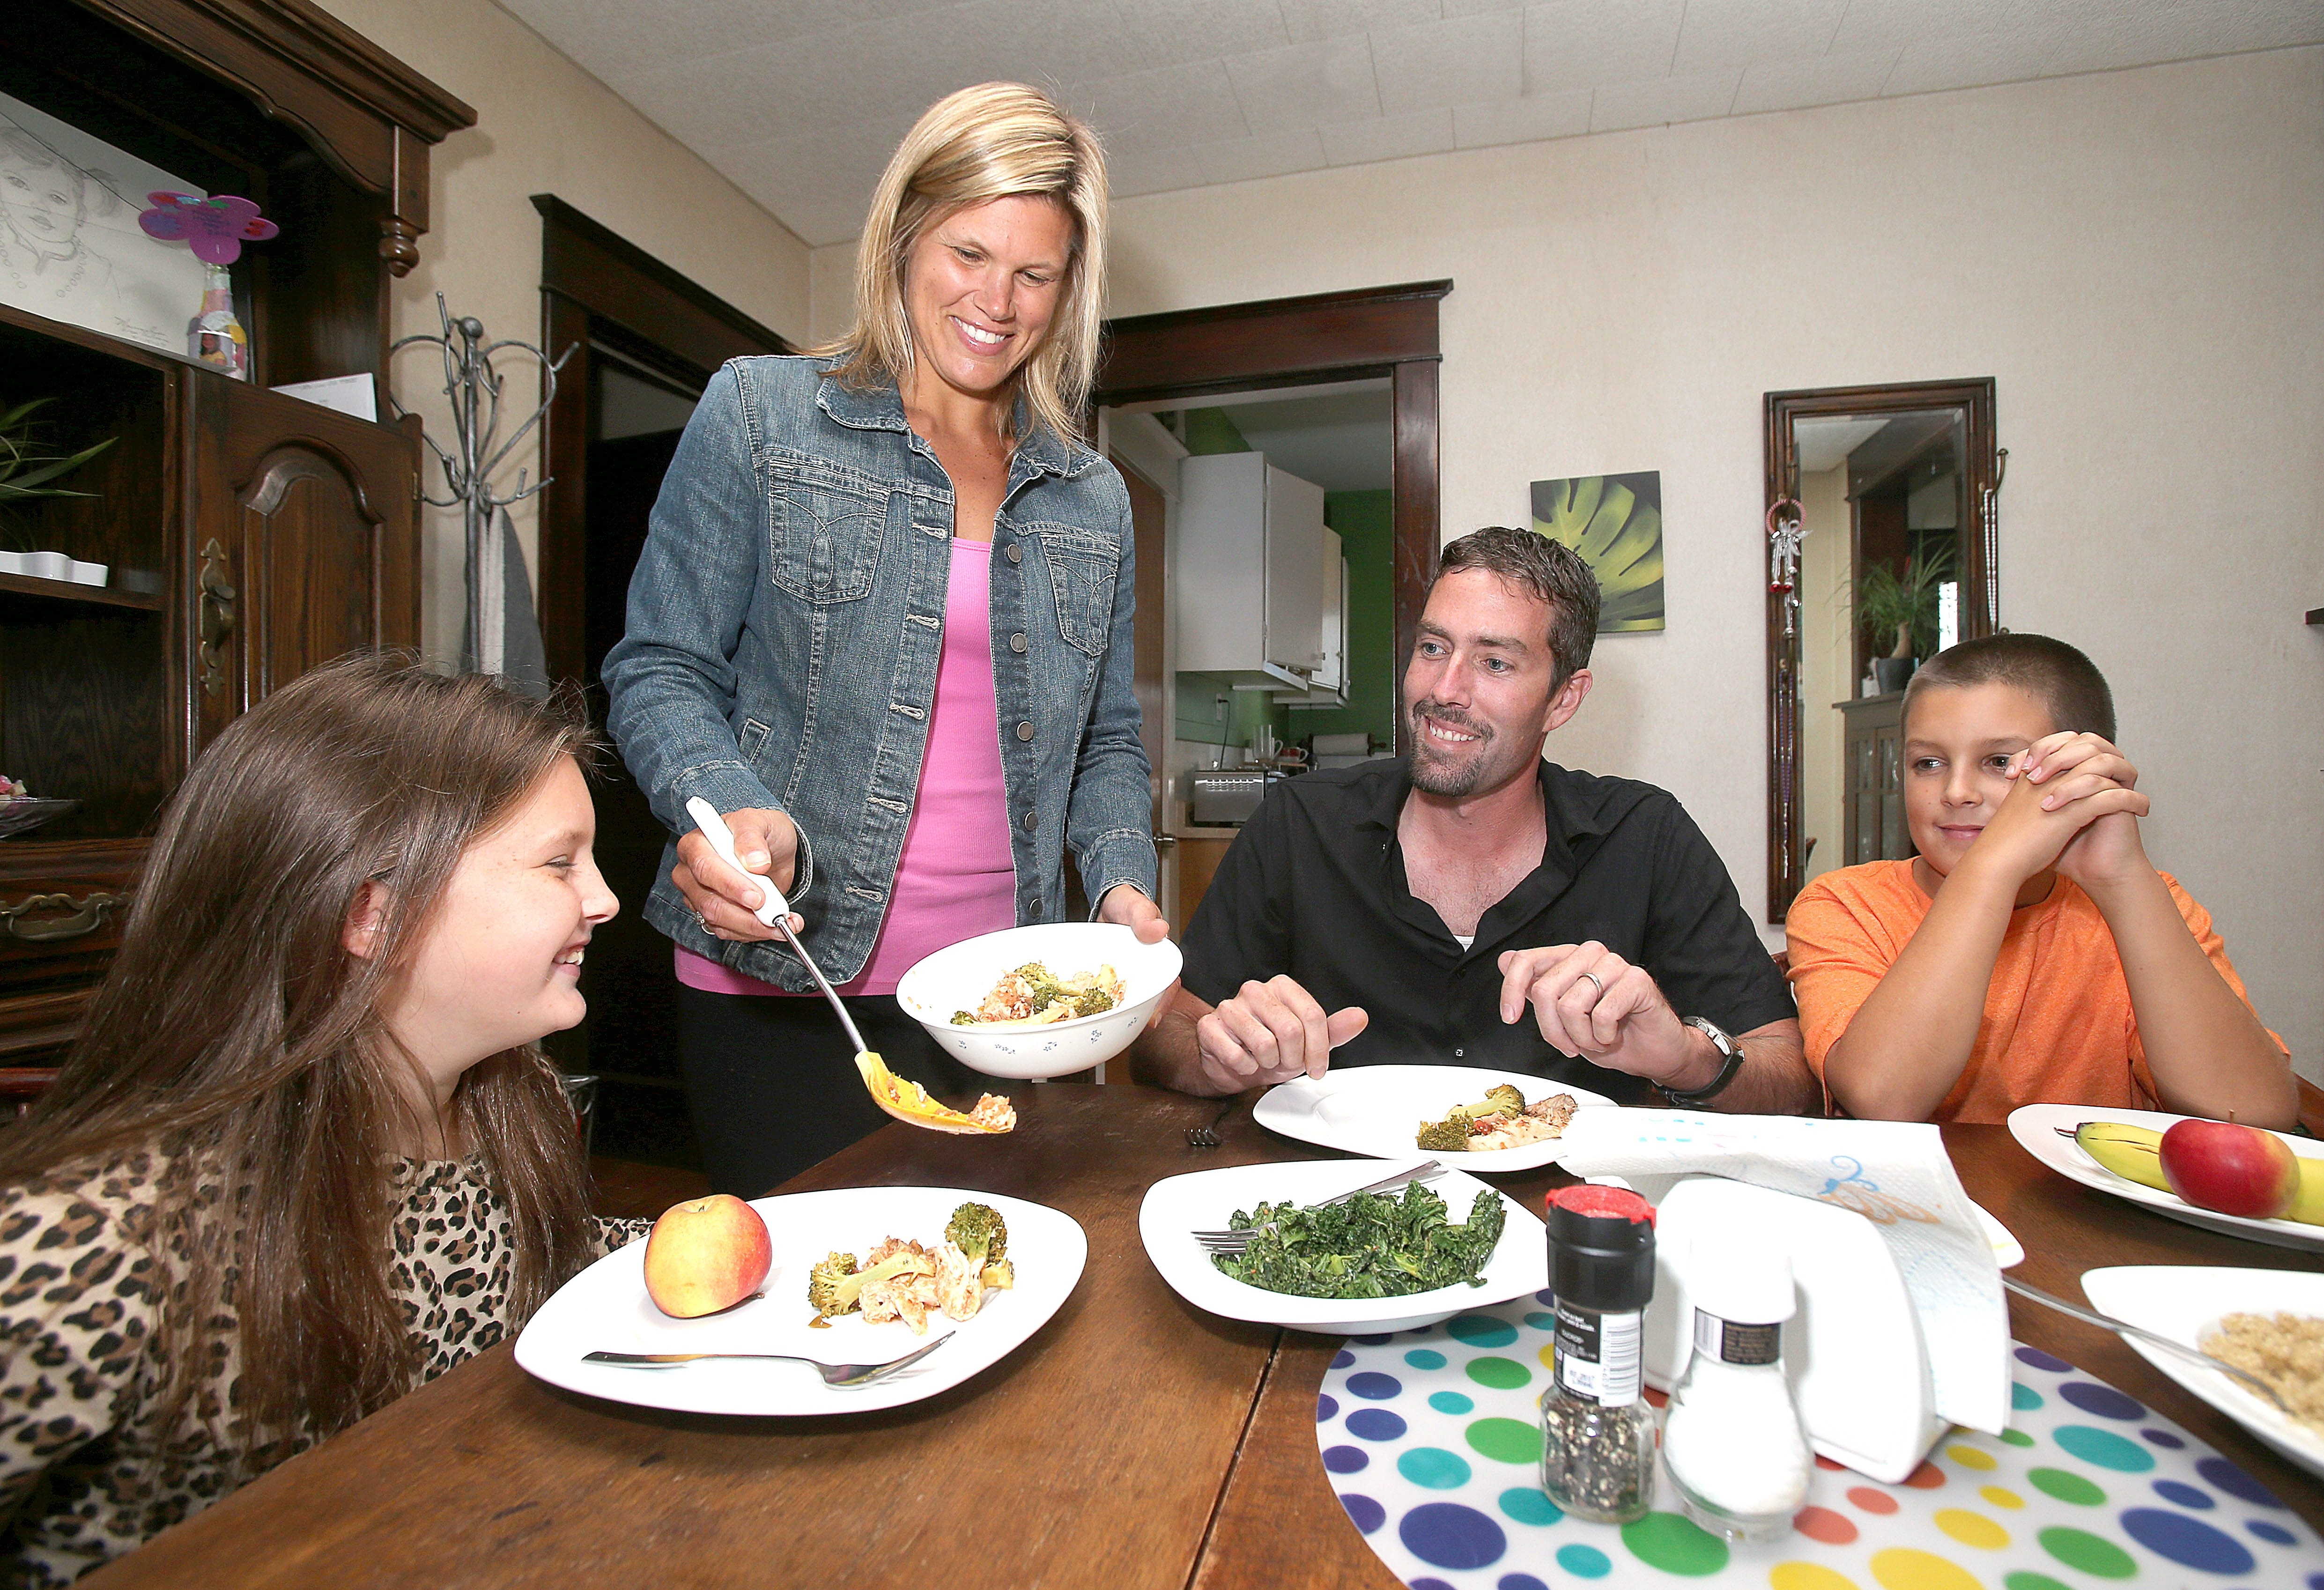 Rachel Miller serves dinner to her family, daughter Emma, 8, husband John, and son Cody, 12. Miller believes it is more cost-effective to go to the grocery store for whole foods instead of eating out.